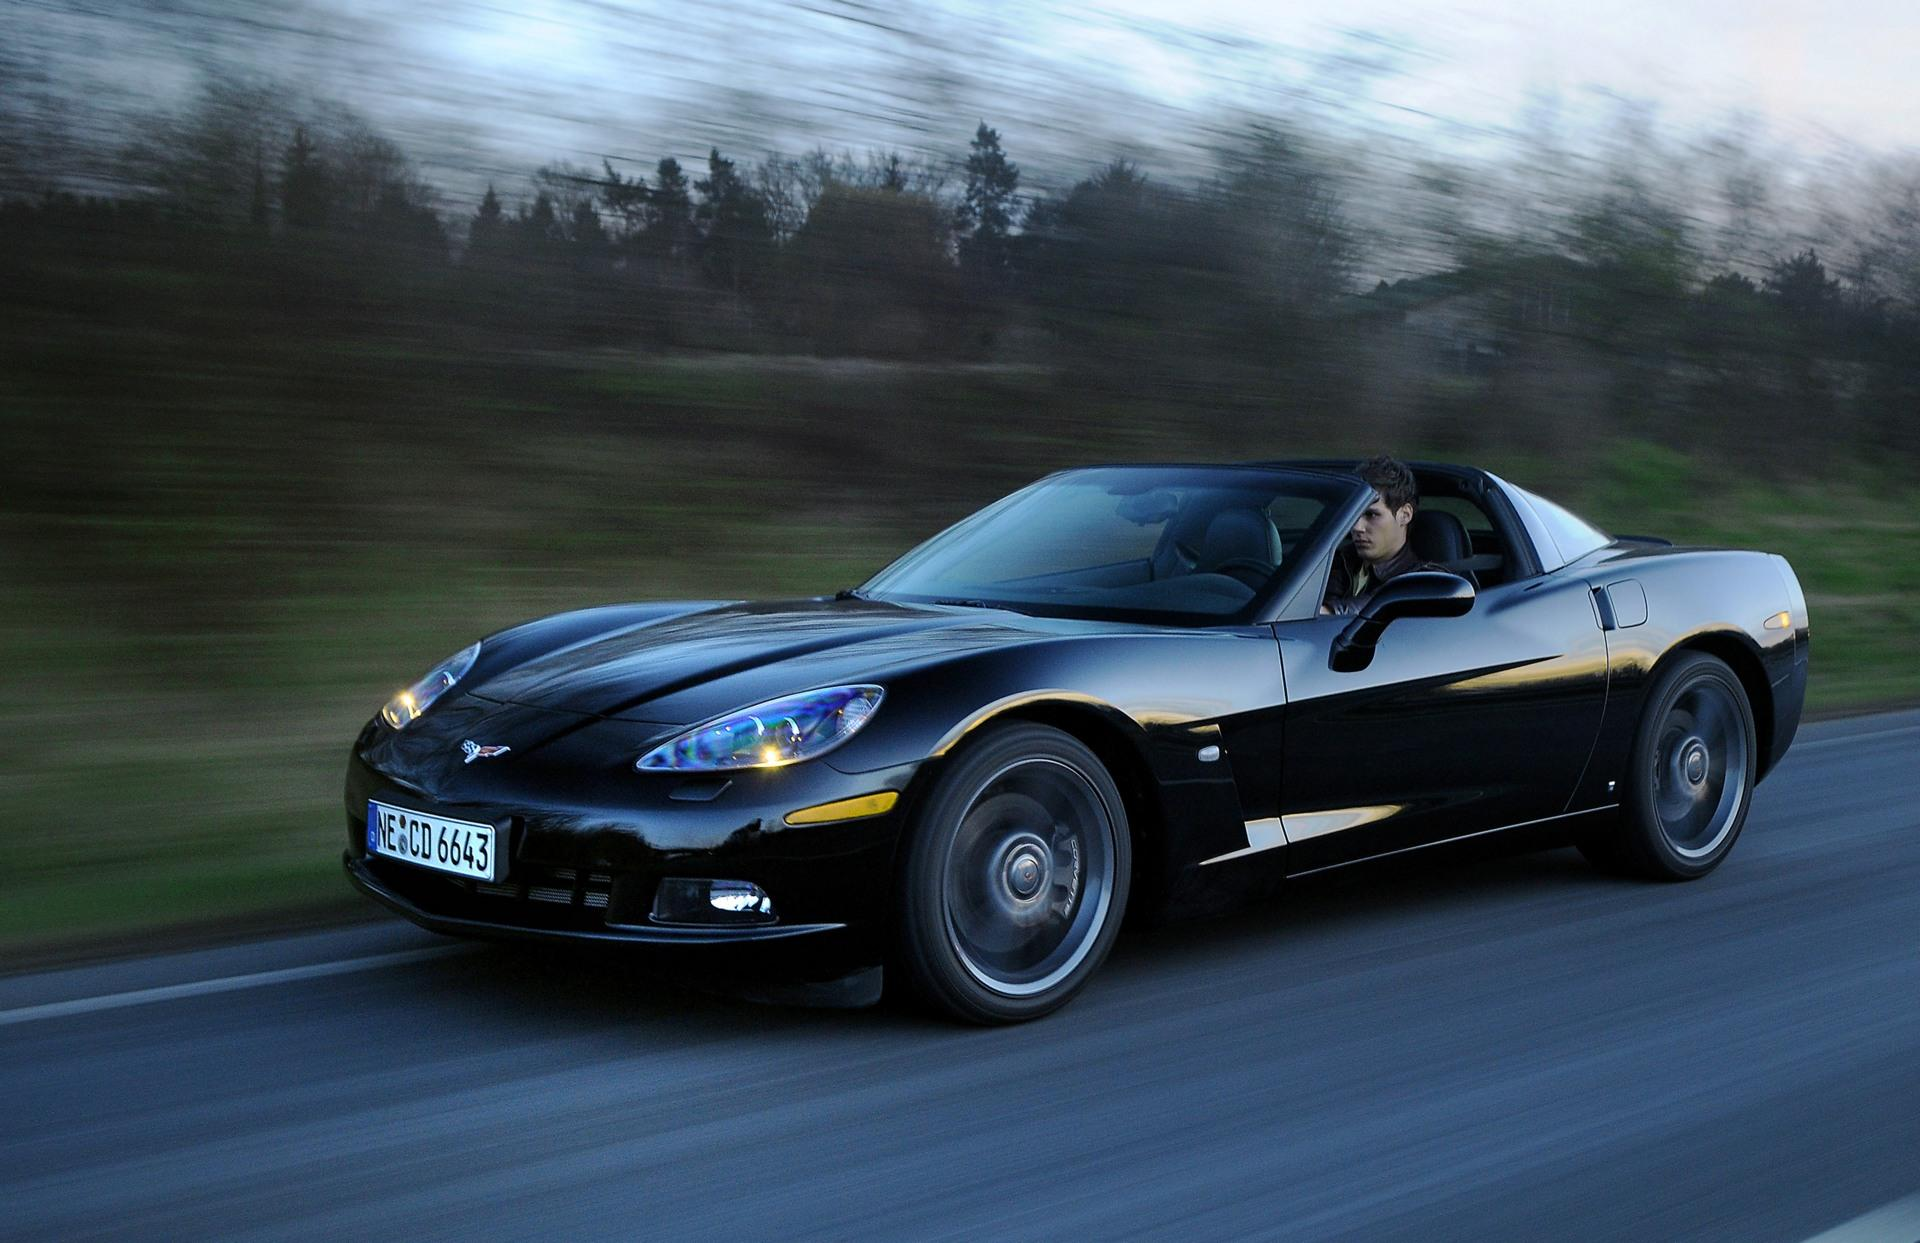 2008 chevrolet corvette c6 coupe competition. Black Bedroom Furniture Sets. Home Design Ideas